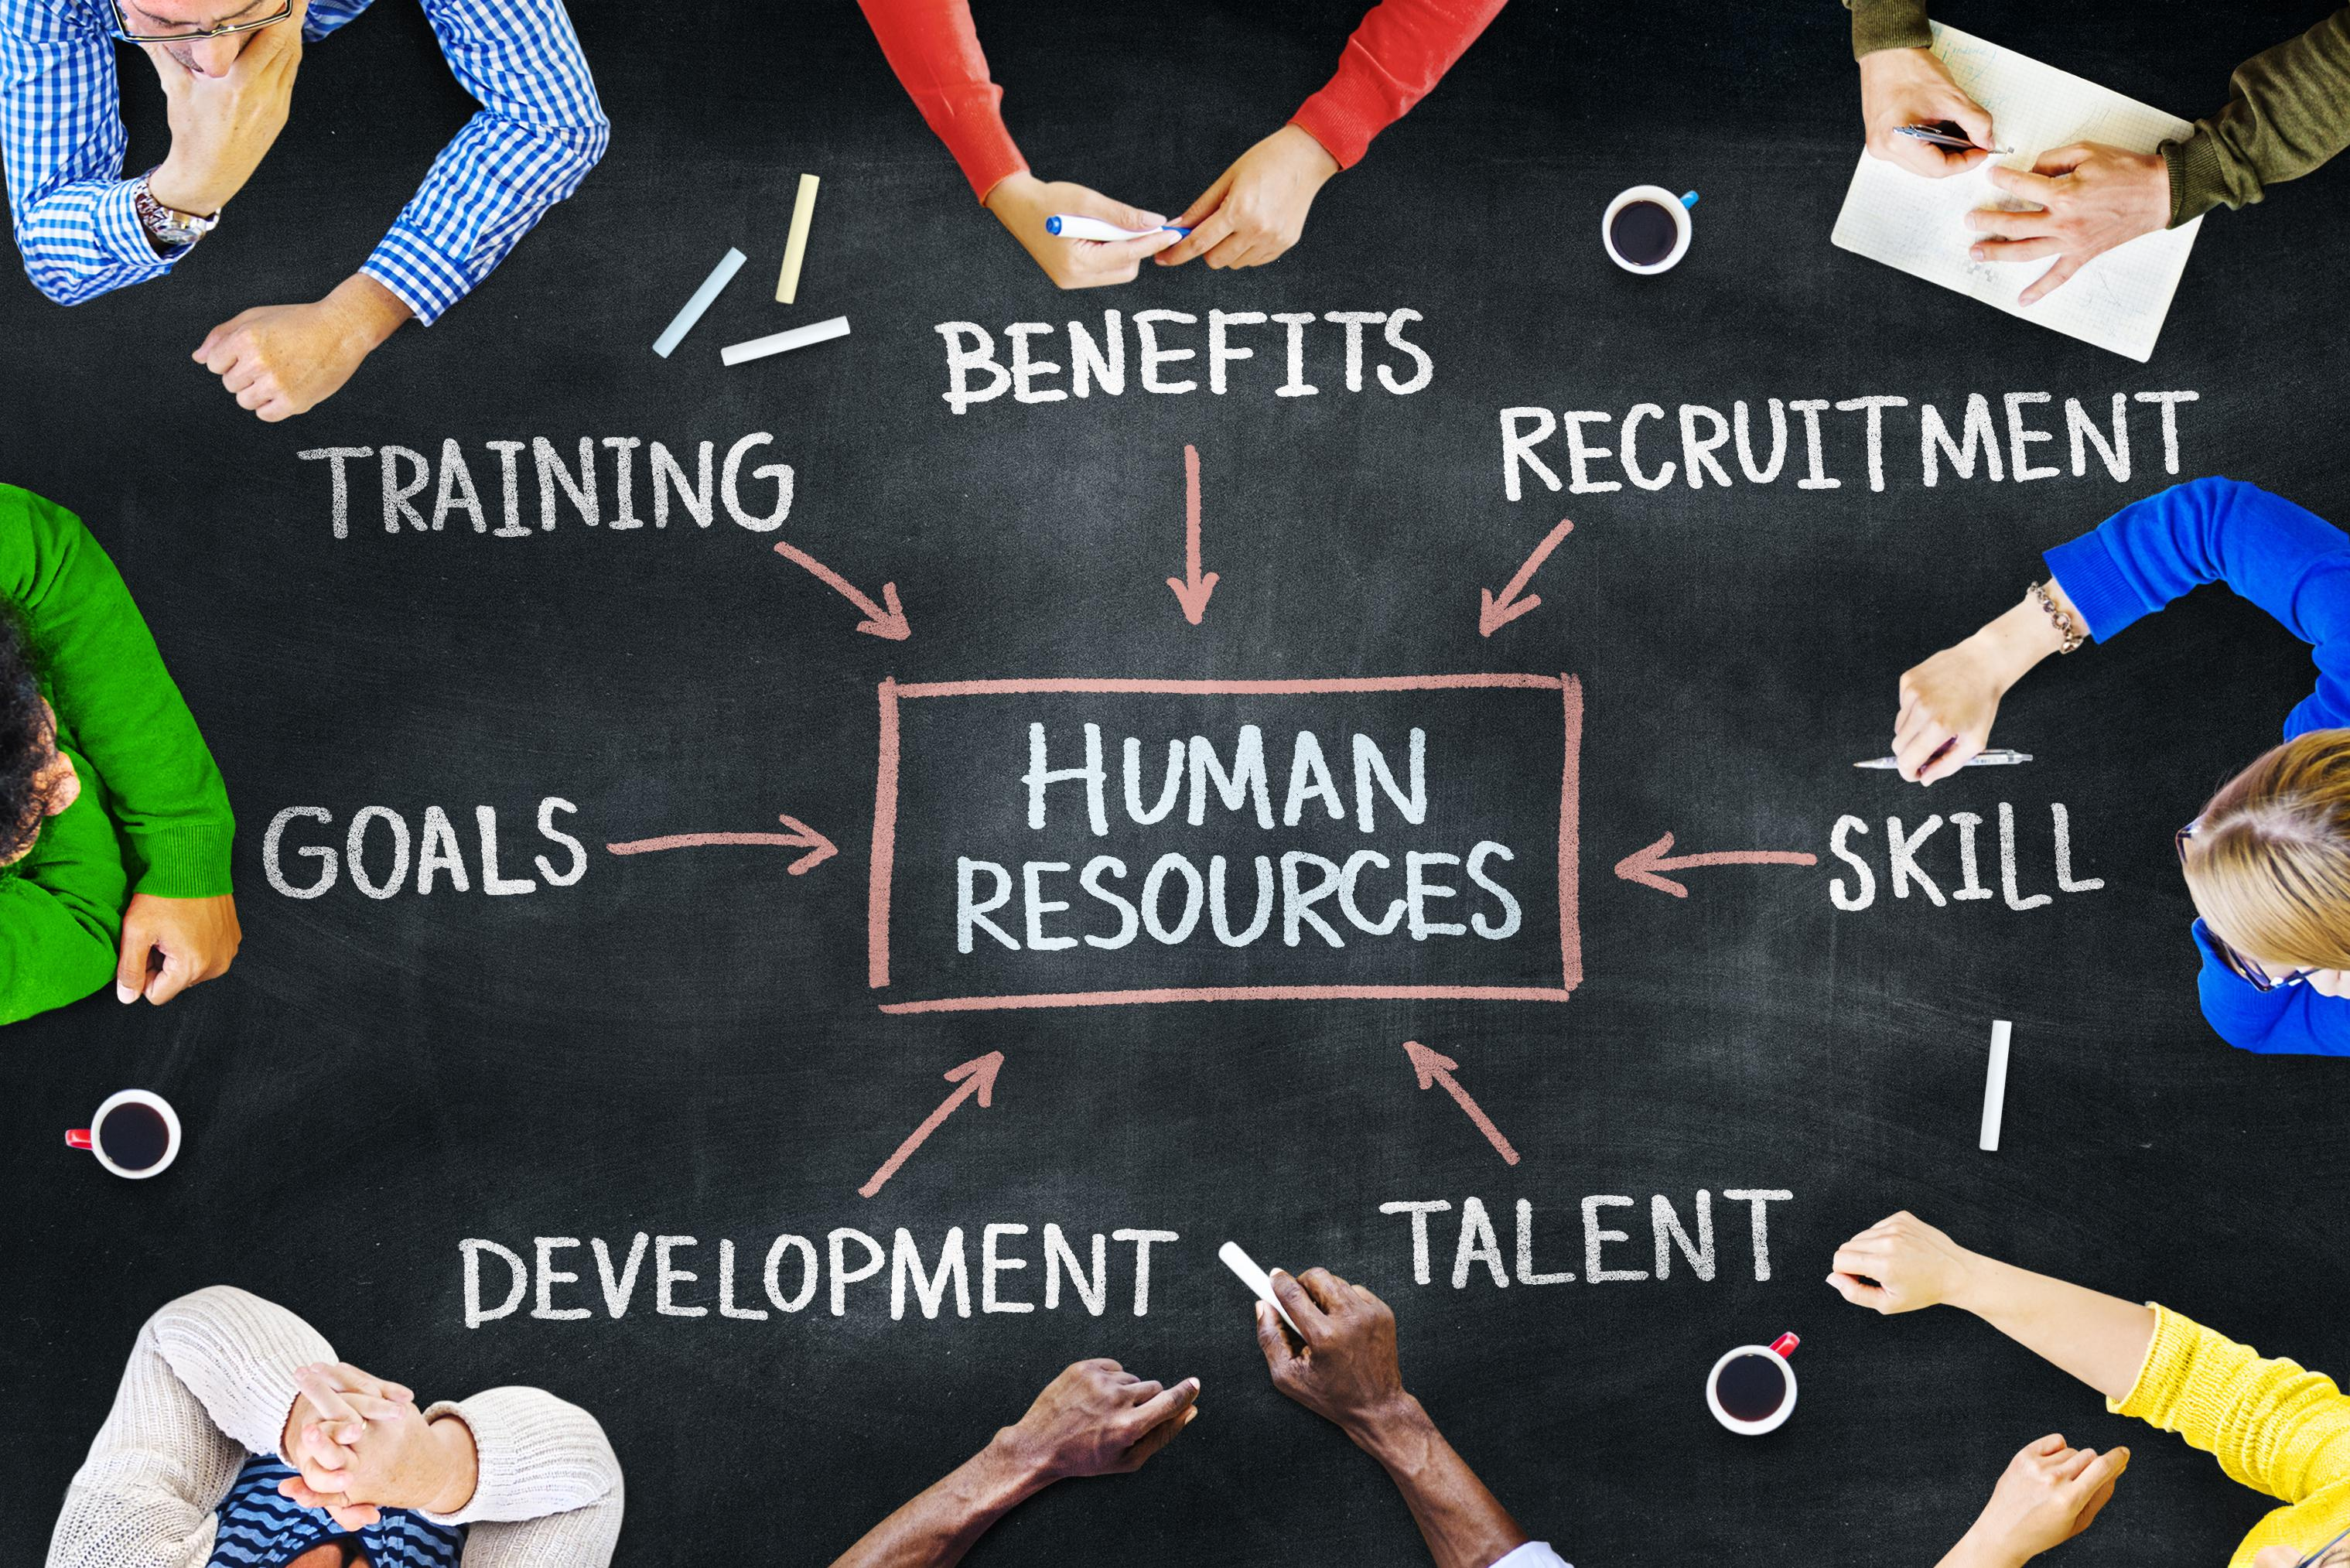 two of the biggest challenges facing human resource departments today